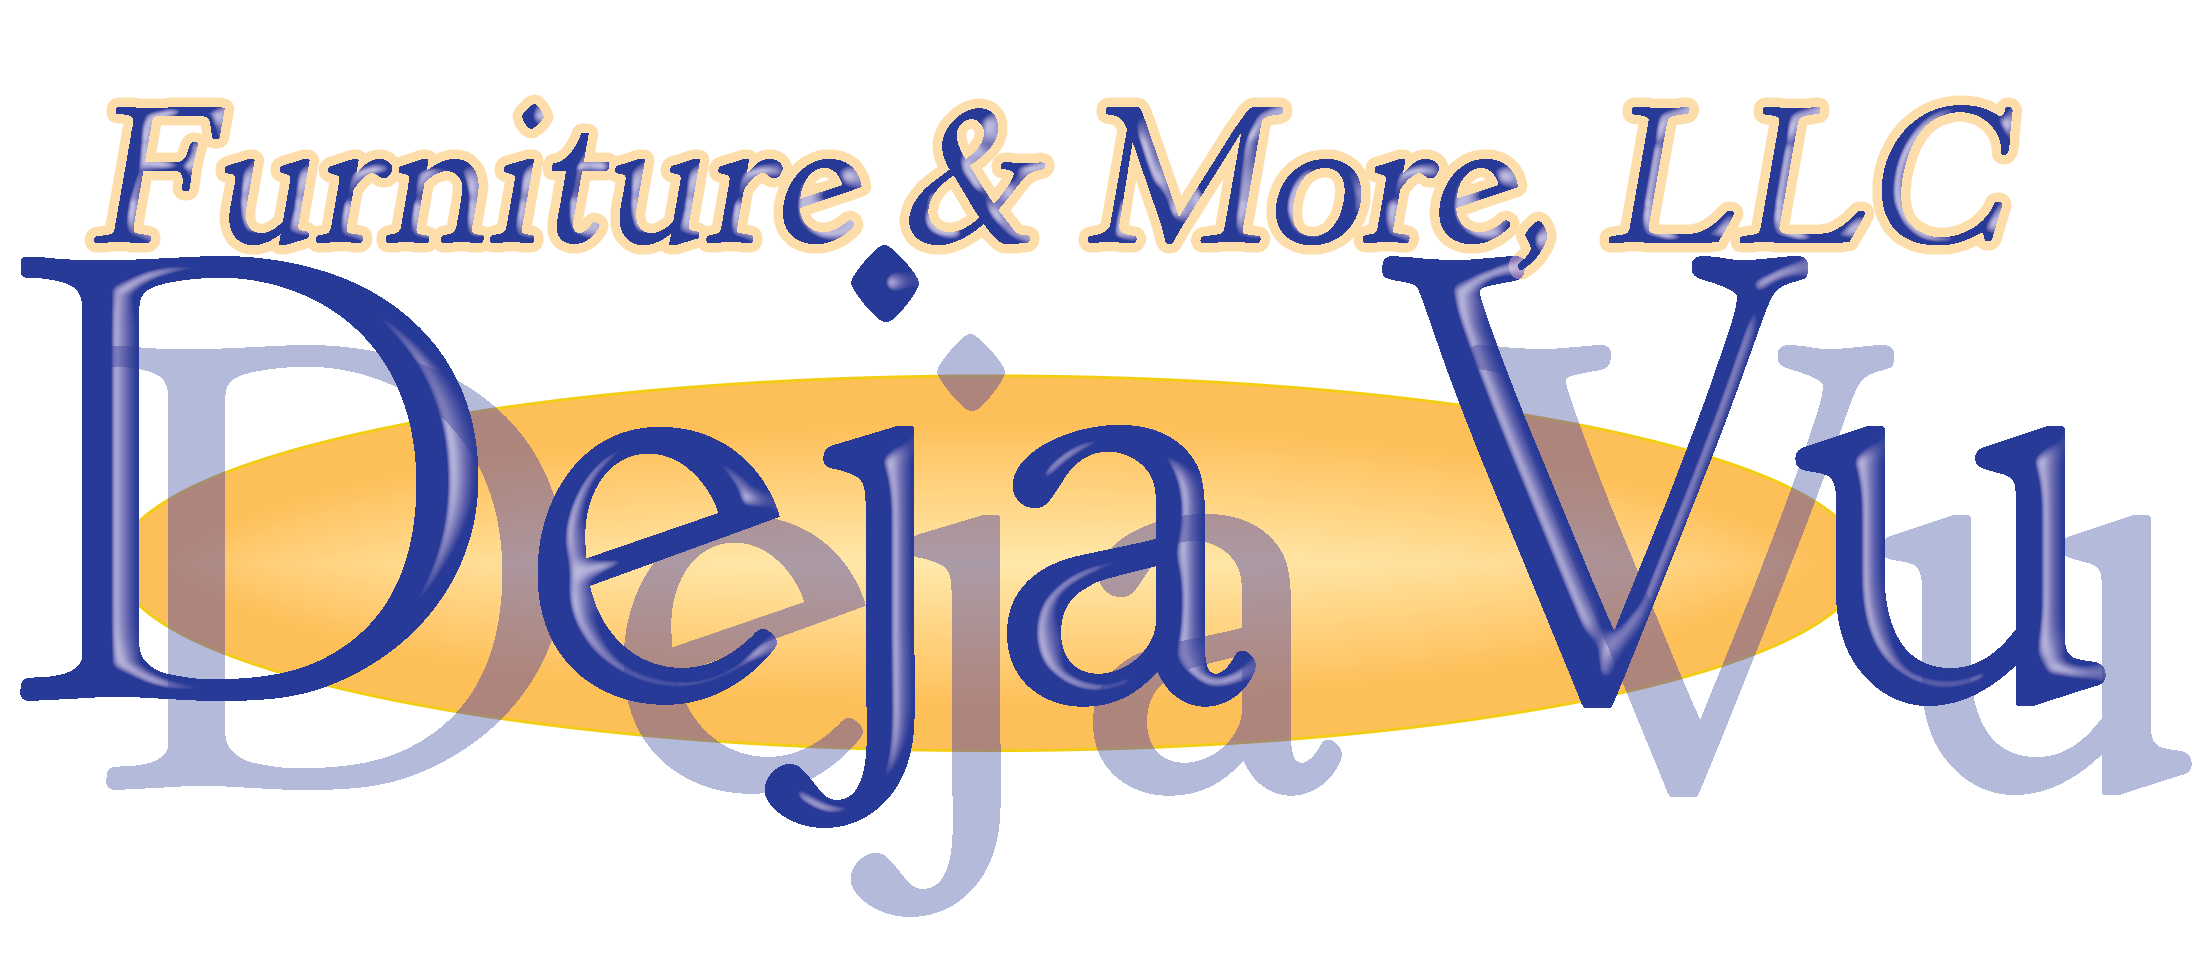 Welcome To Deja Vu Furniture U0026 More!